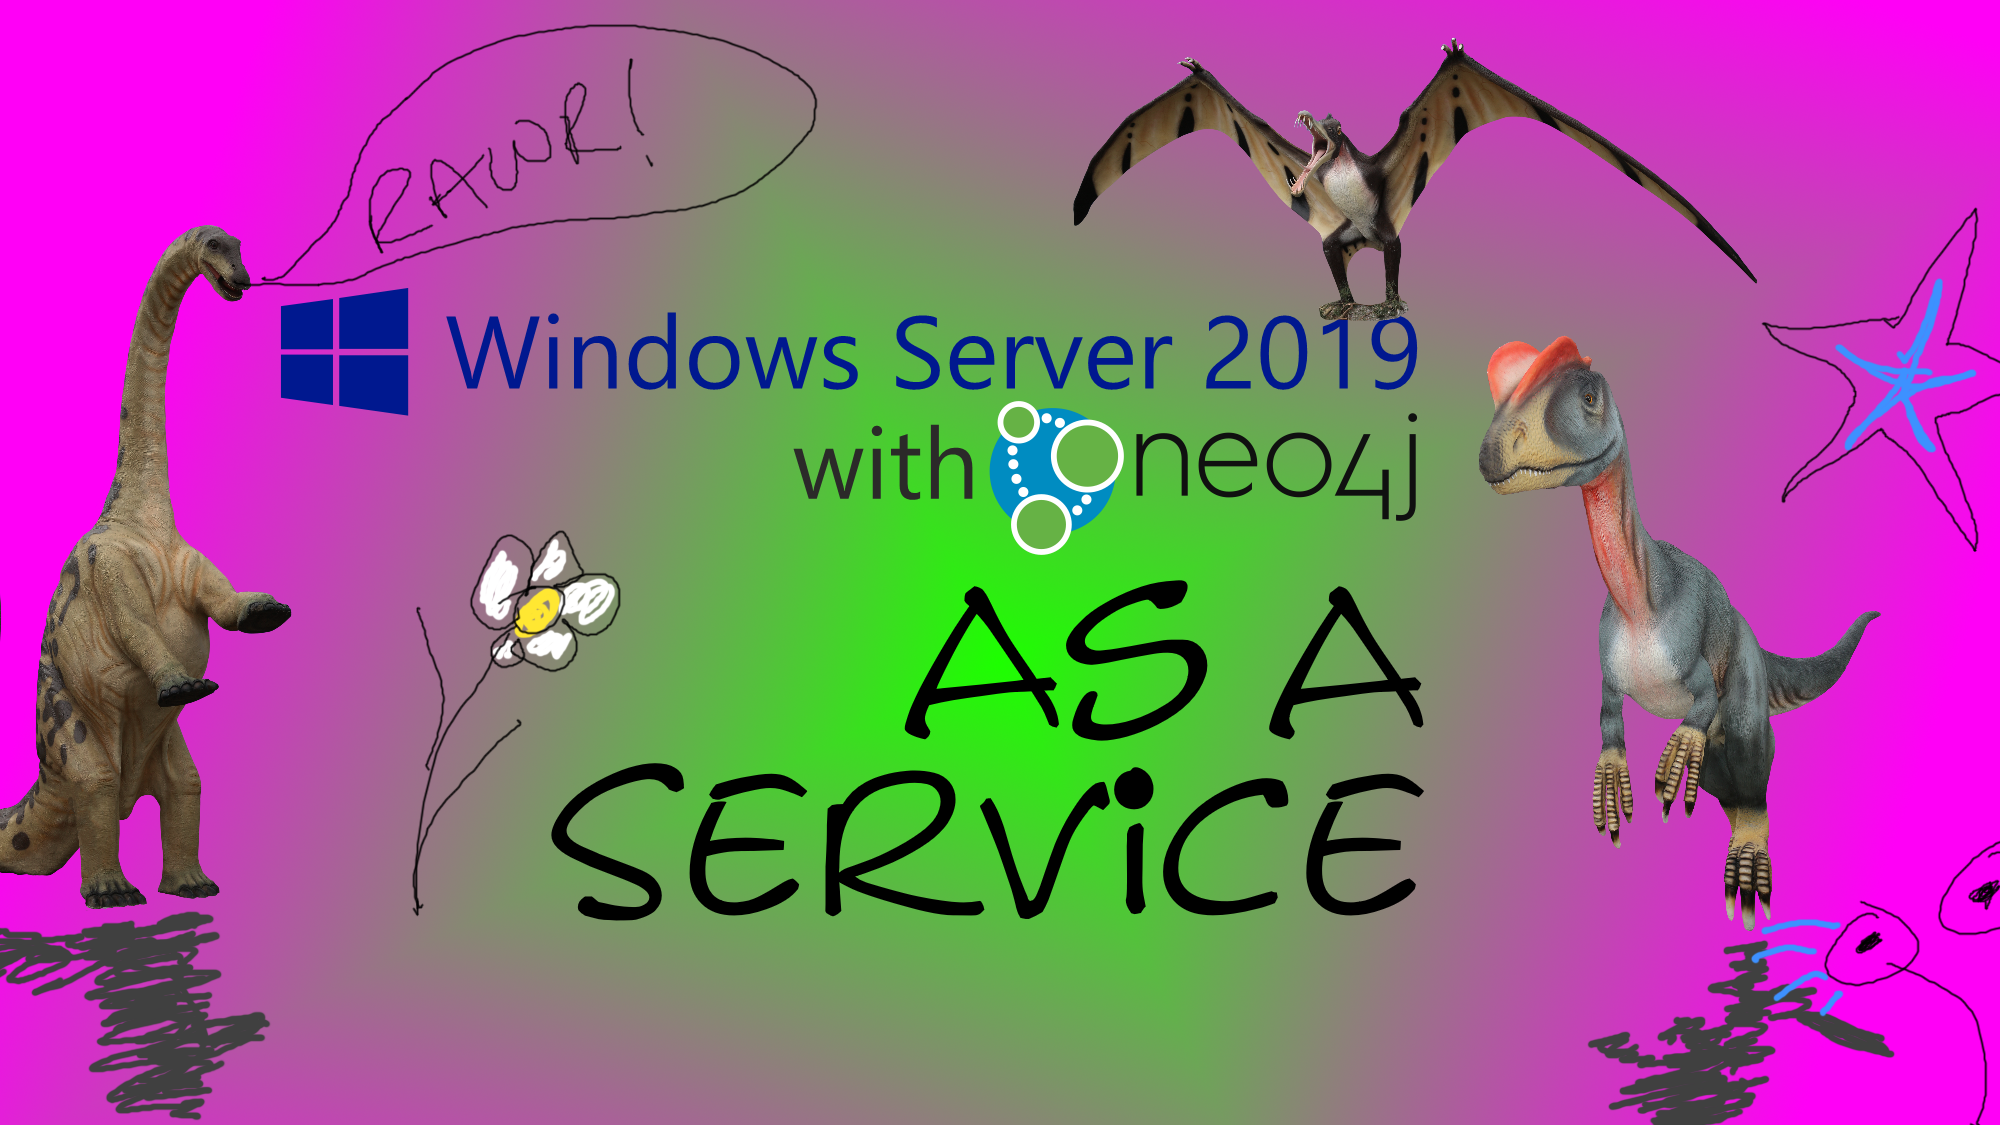 Windows Server 2019 with Neo4j as a service. There are spurious dinosaurs on this. They add nothing, but it's a dry topic...